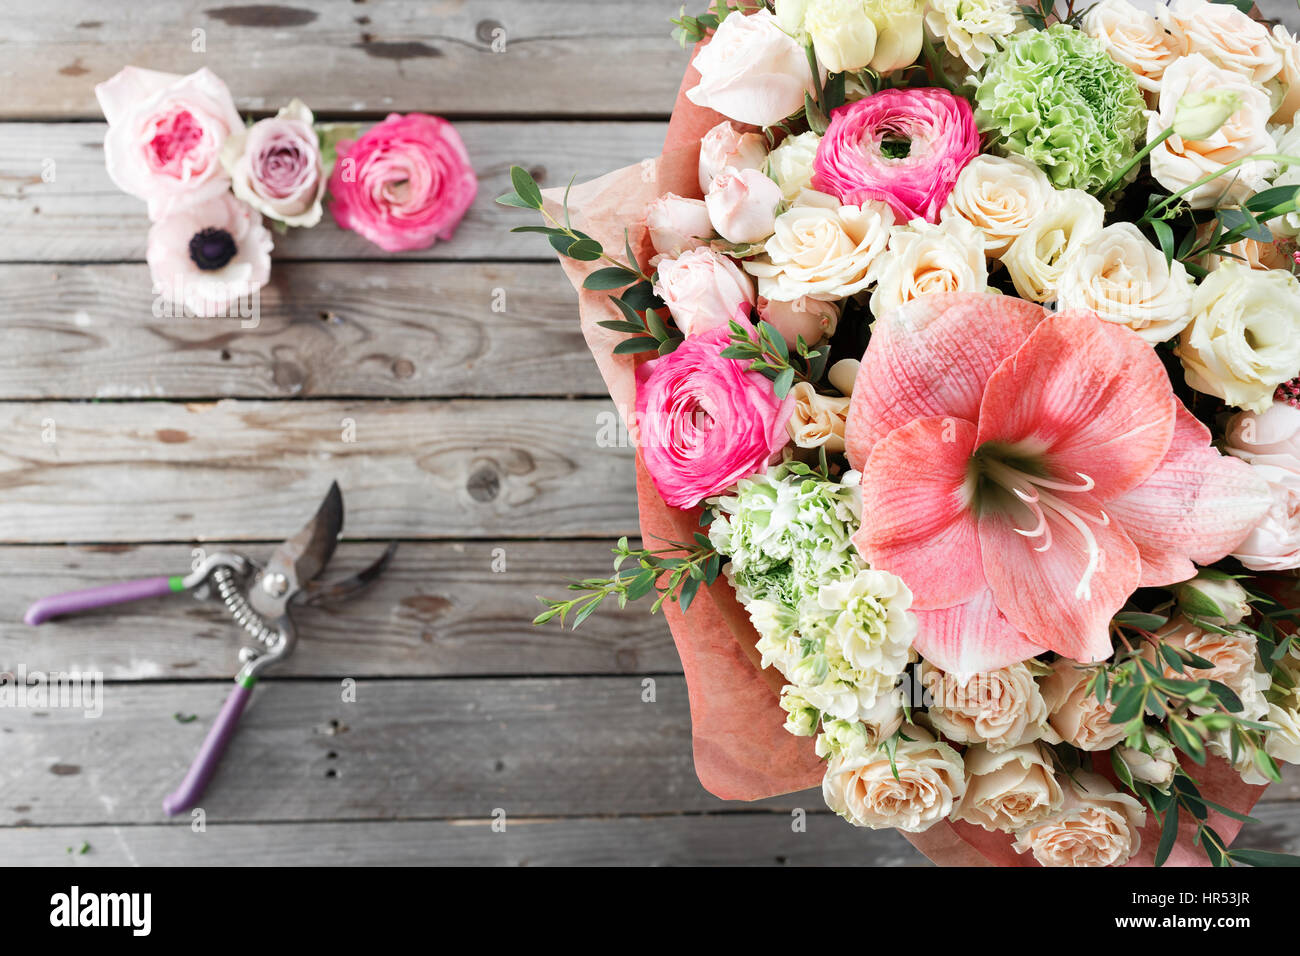 Mix Flowers Bouquet On Wooden Background Old Rustic Table A Coil